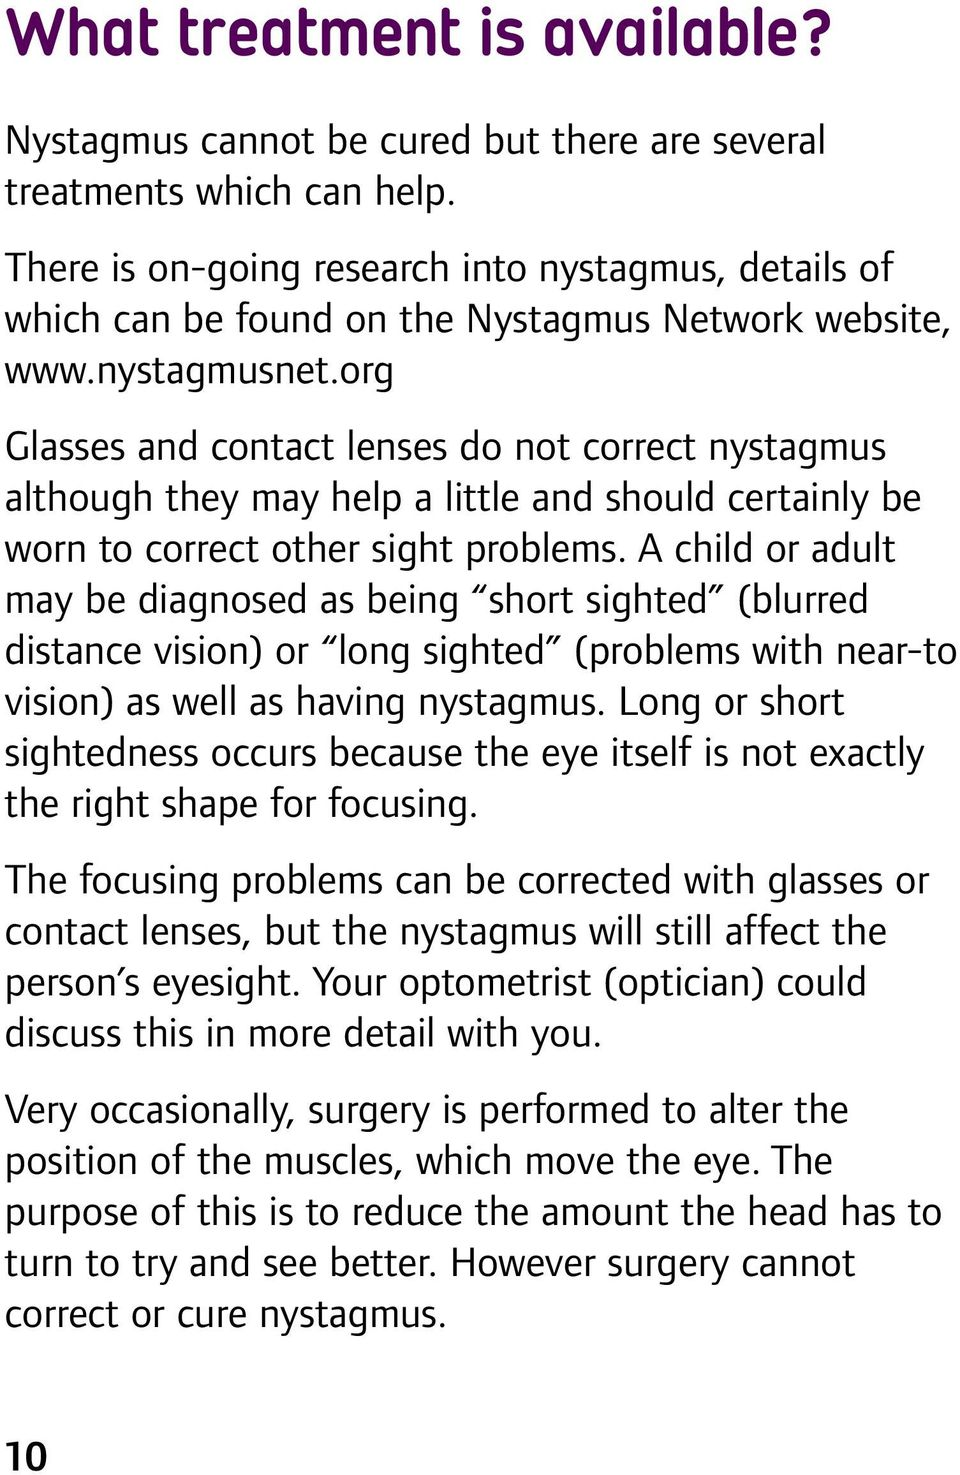 org Gasses and contact enses do not correct nystagmus athough they may hep a itte and shoud certainy be worn to correct other sight probems.